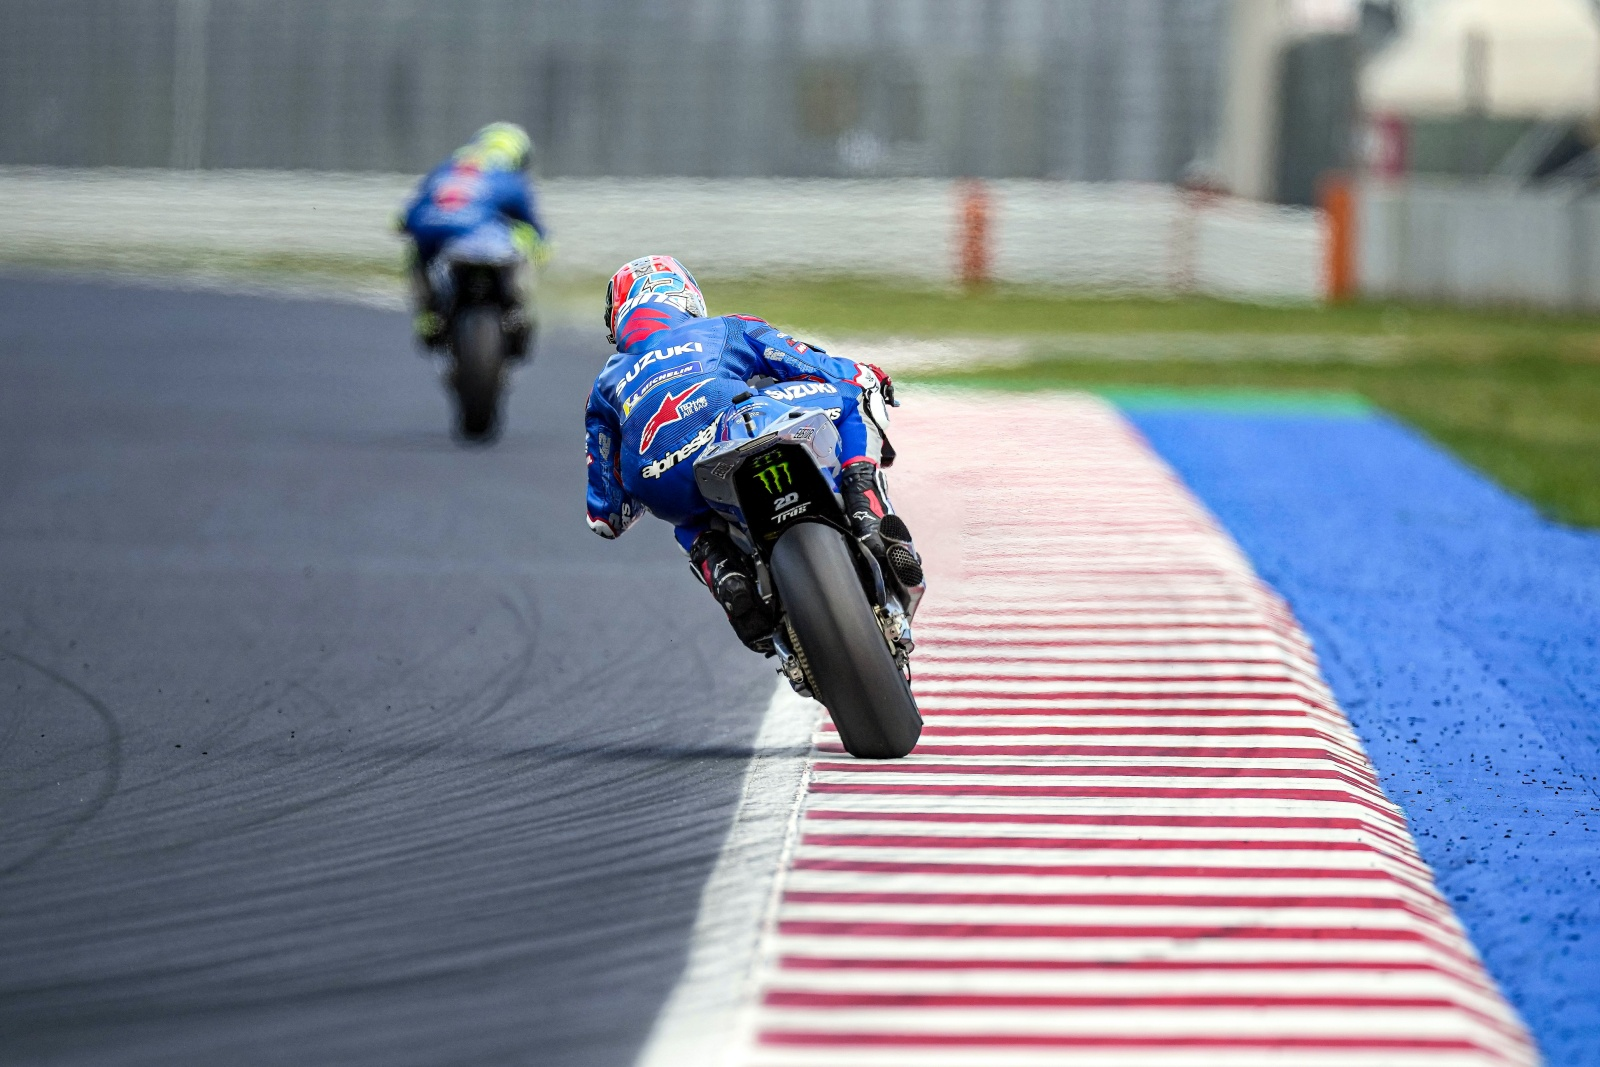 SEVERAL NEW ITEMS SUCCESFULLY TESTED IN MISANO